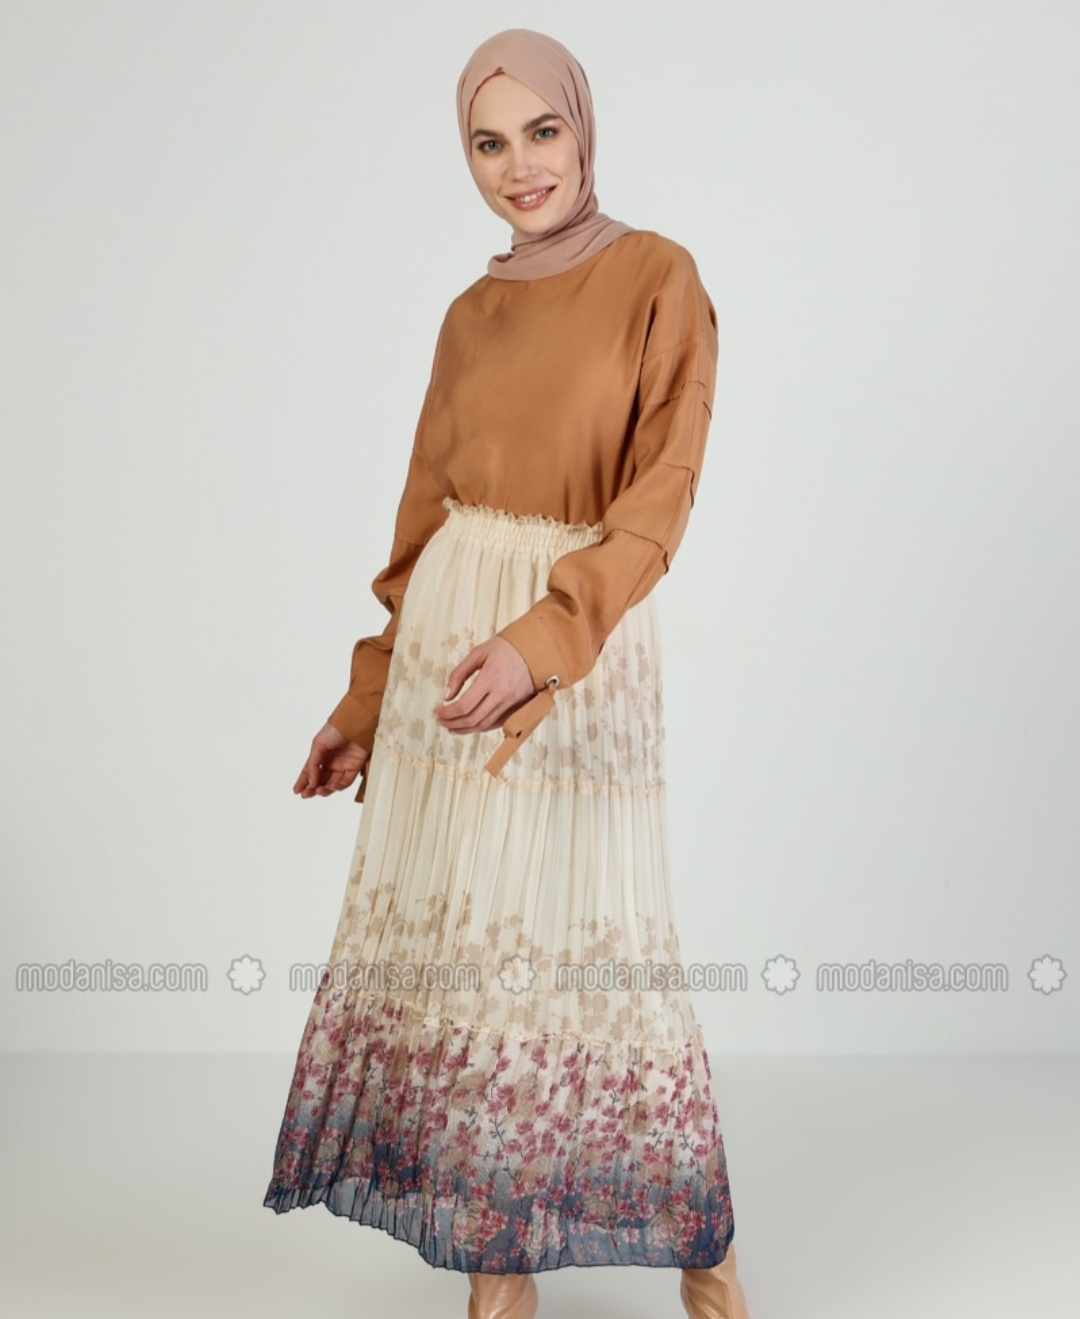 Robes Hijab: 2021 marque un style moderne